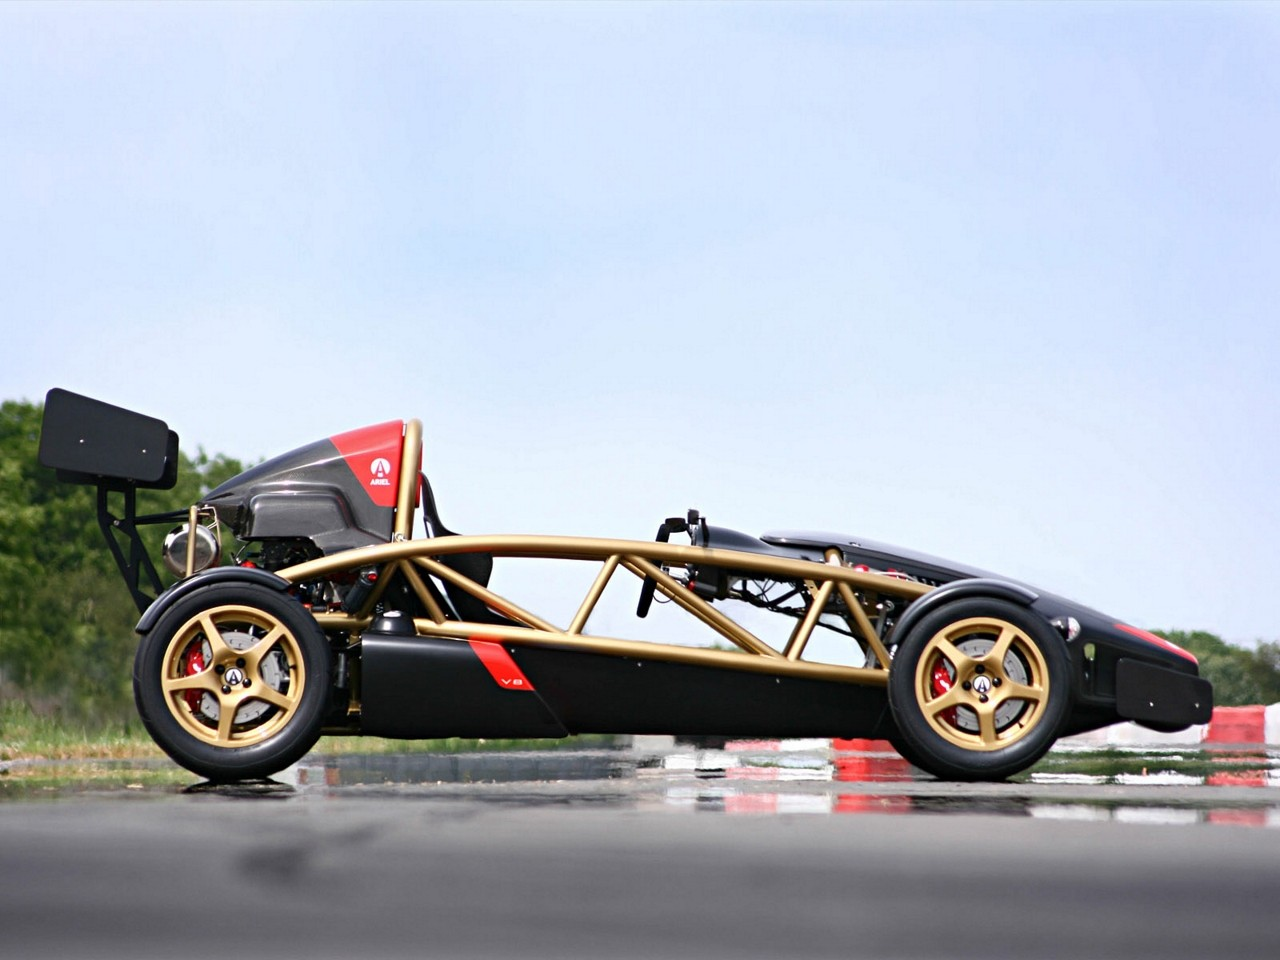 Ariel Atom V on 500 Cadillac V8 Engine